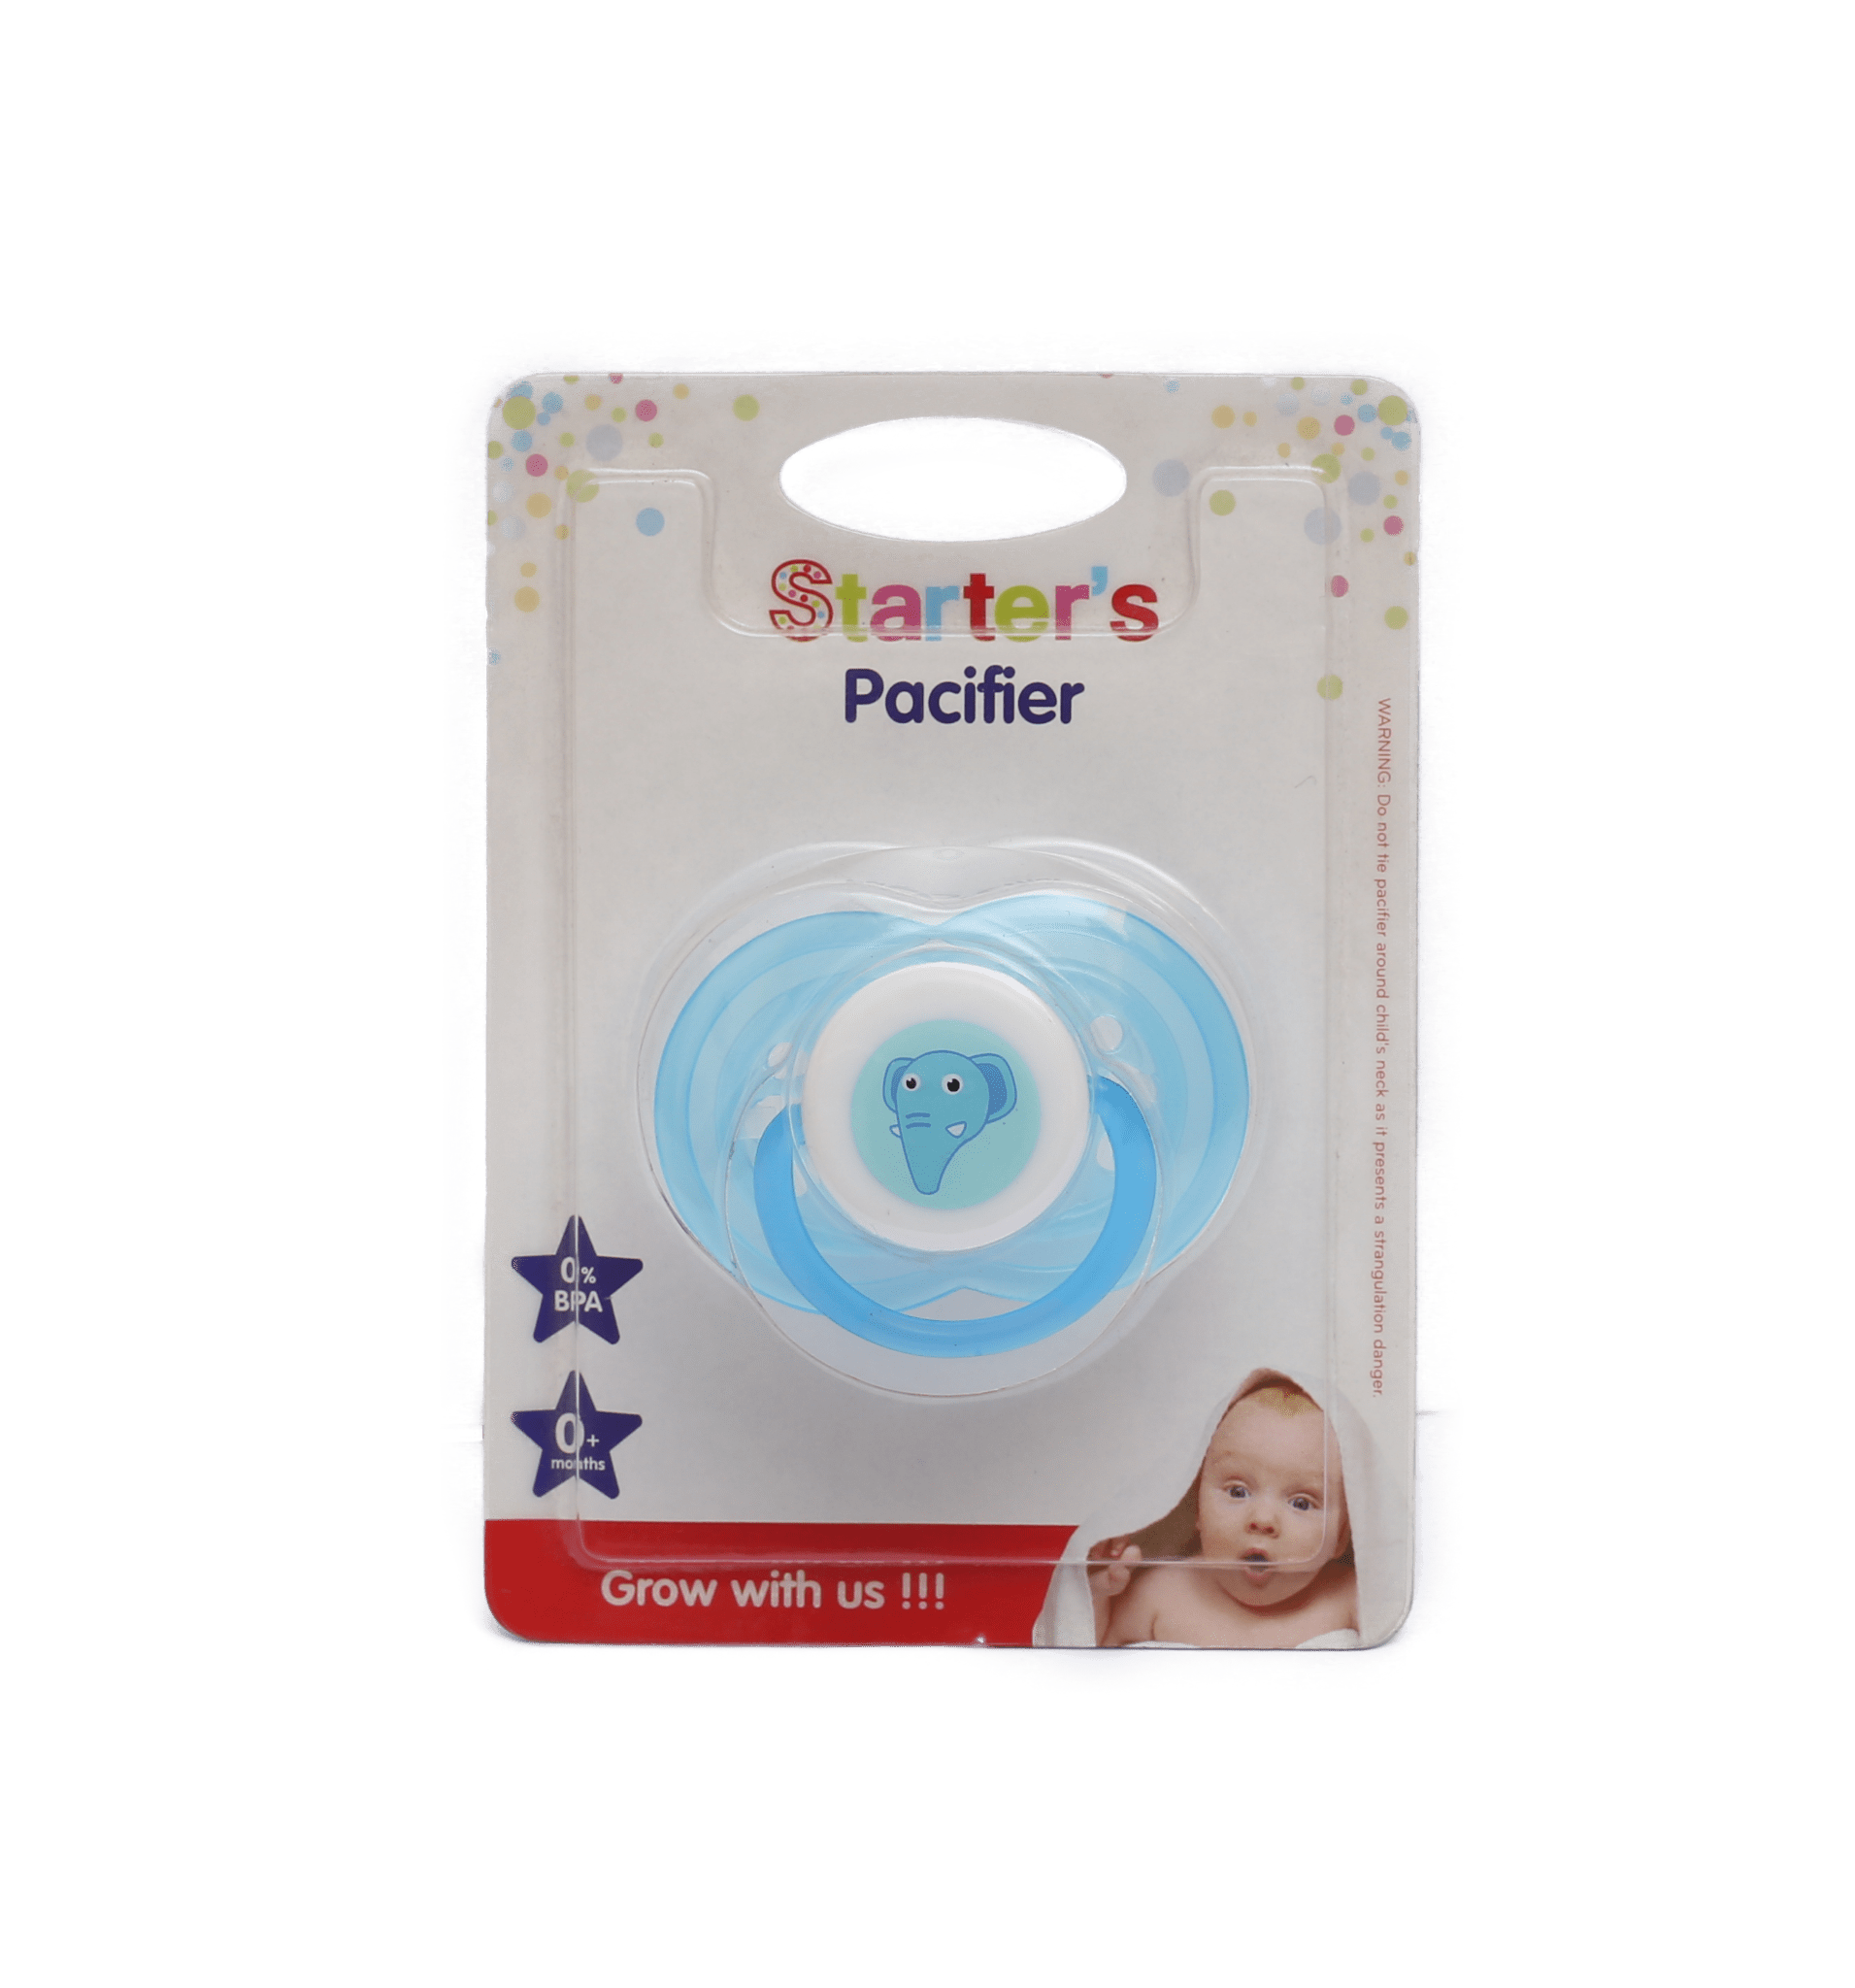 Starter's Pacifier/Soother